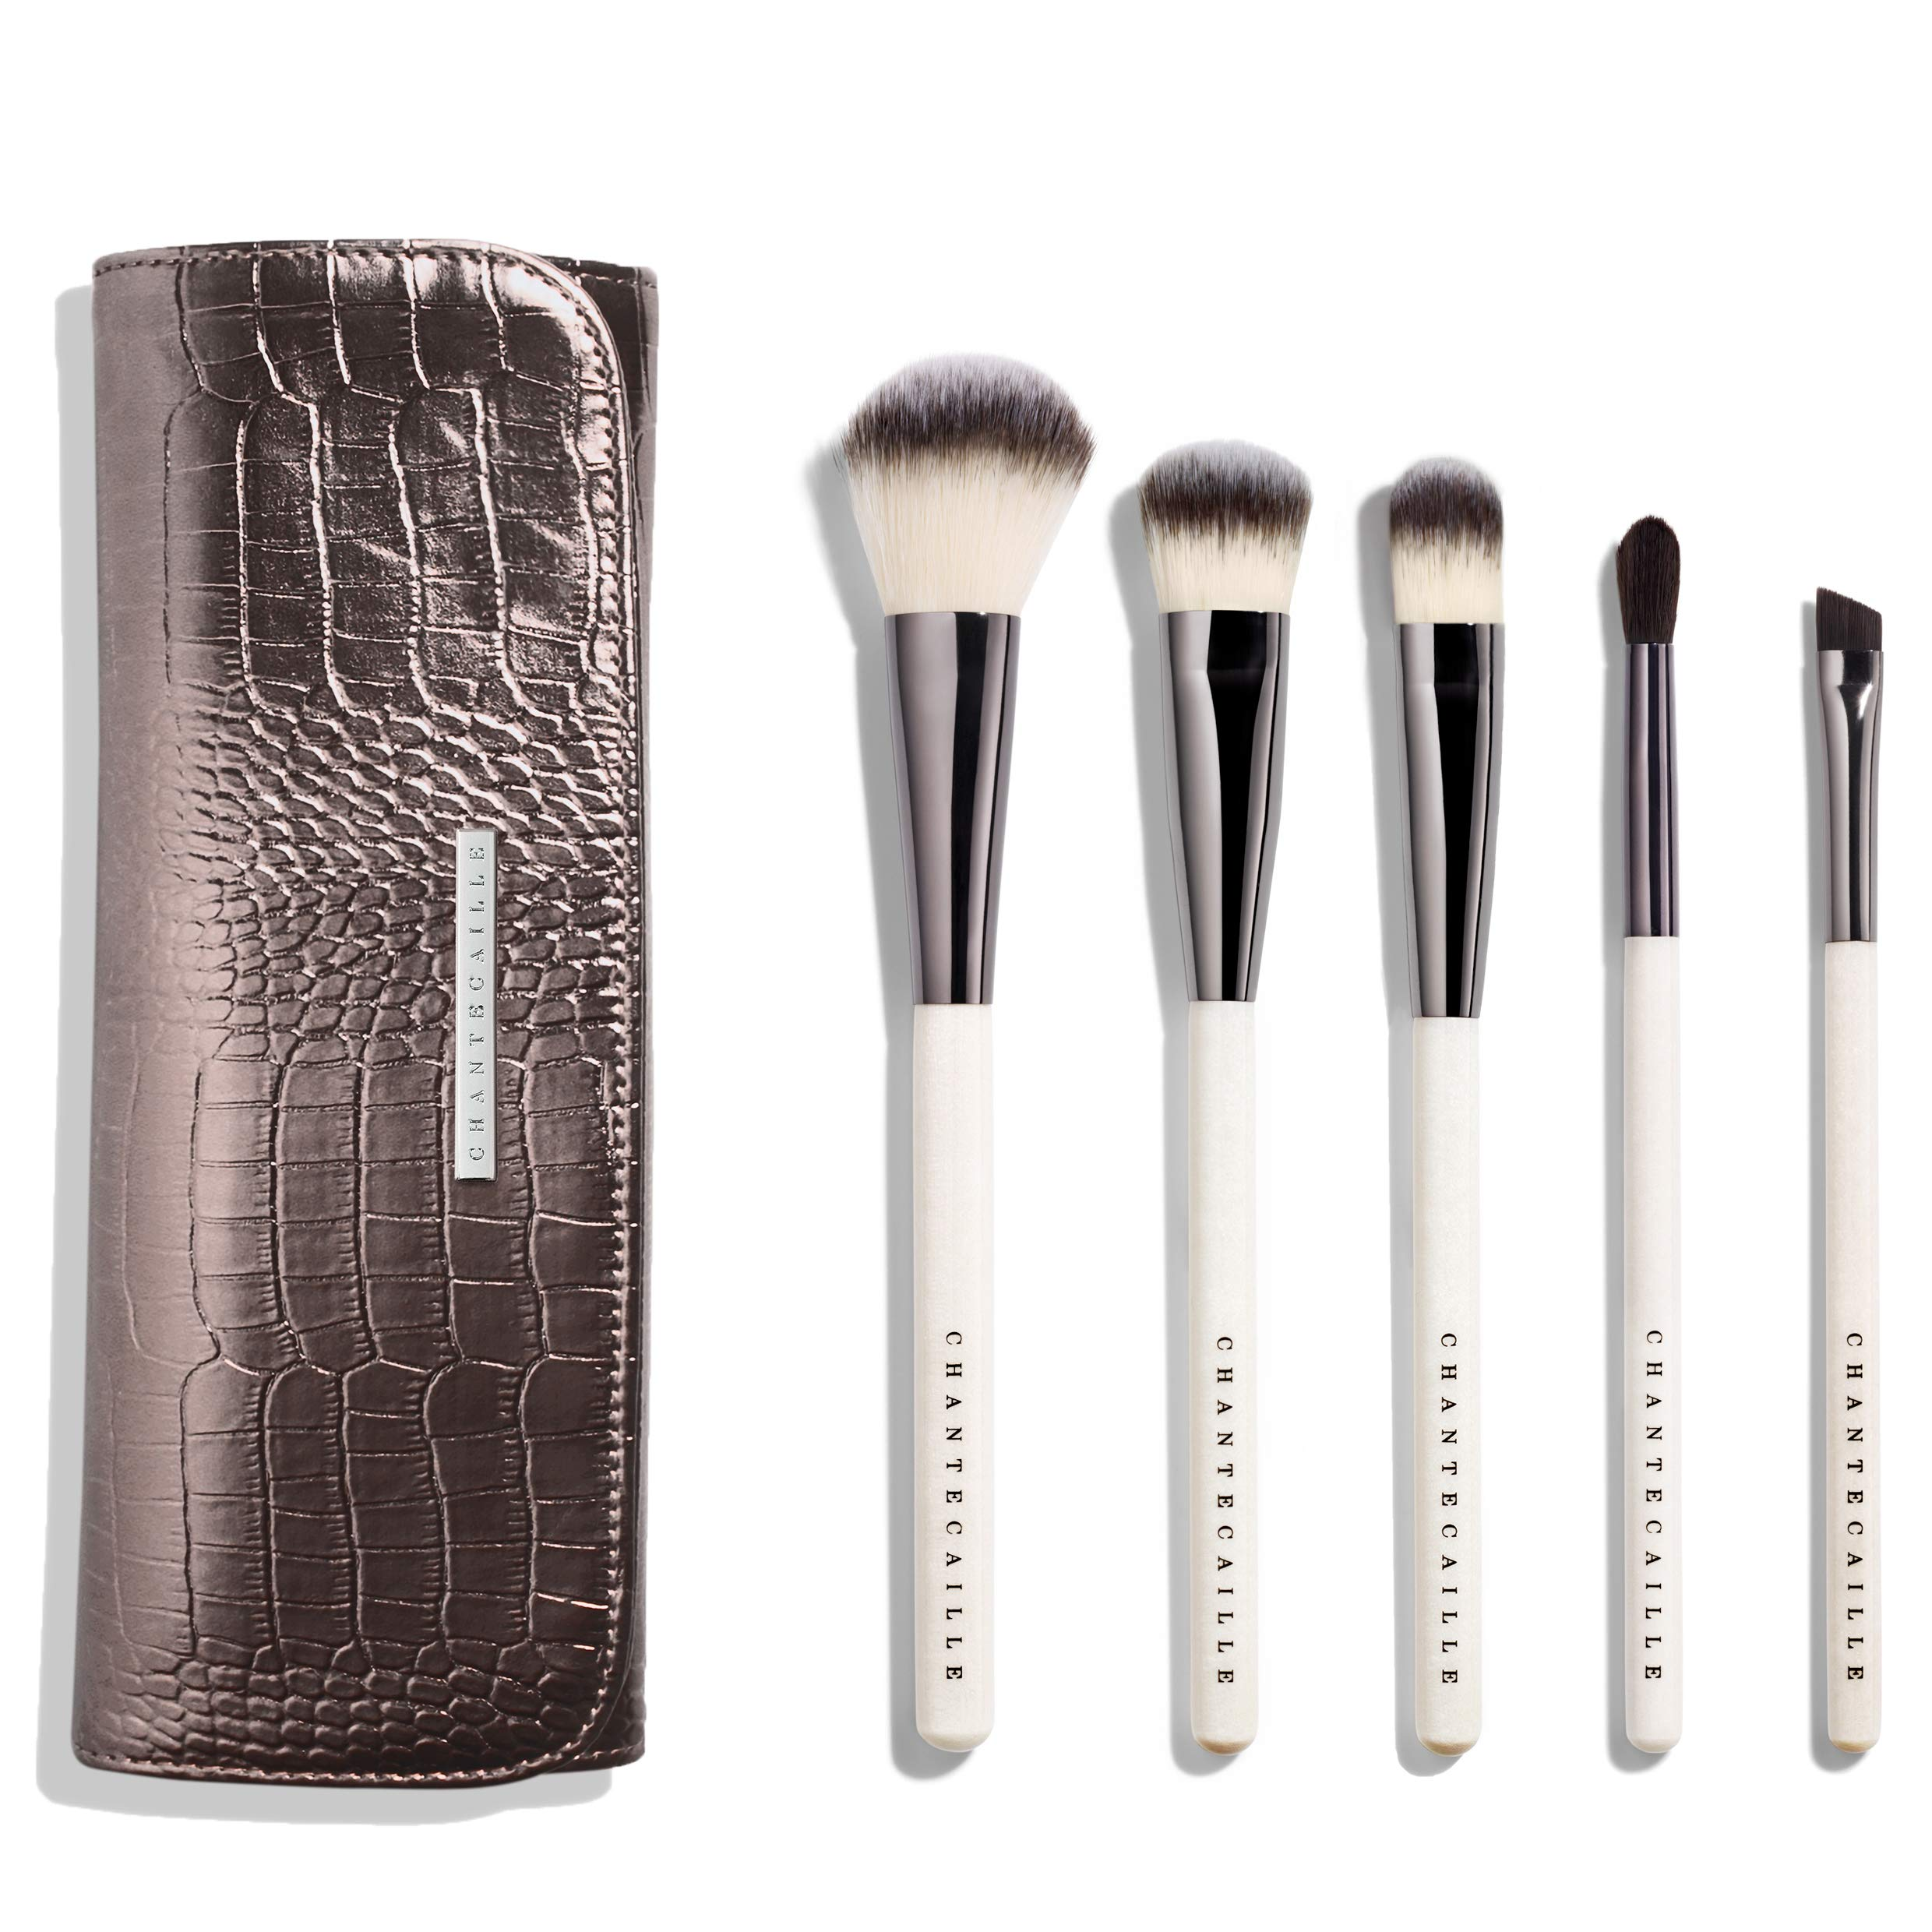 Chantecaille Limited Edition Ultimate Brush Set - 5 pcs